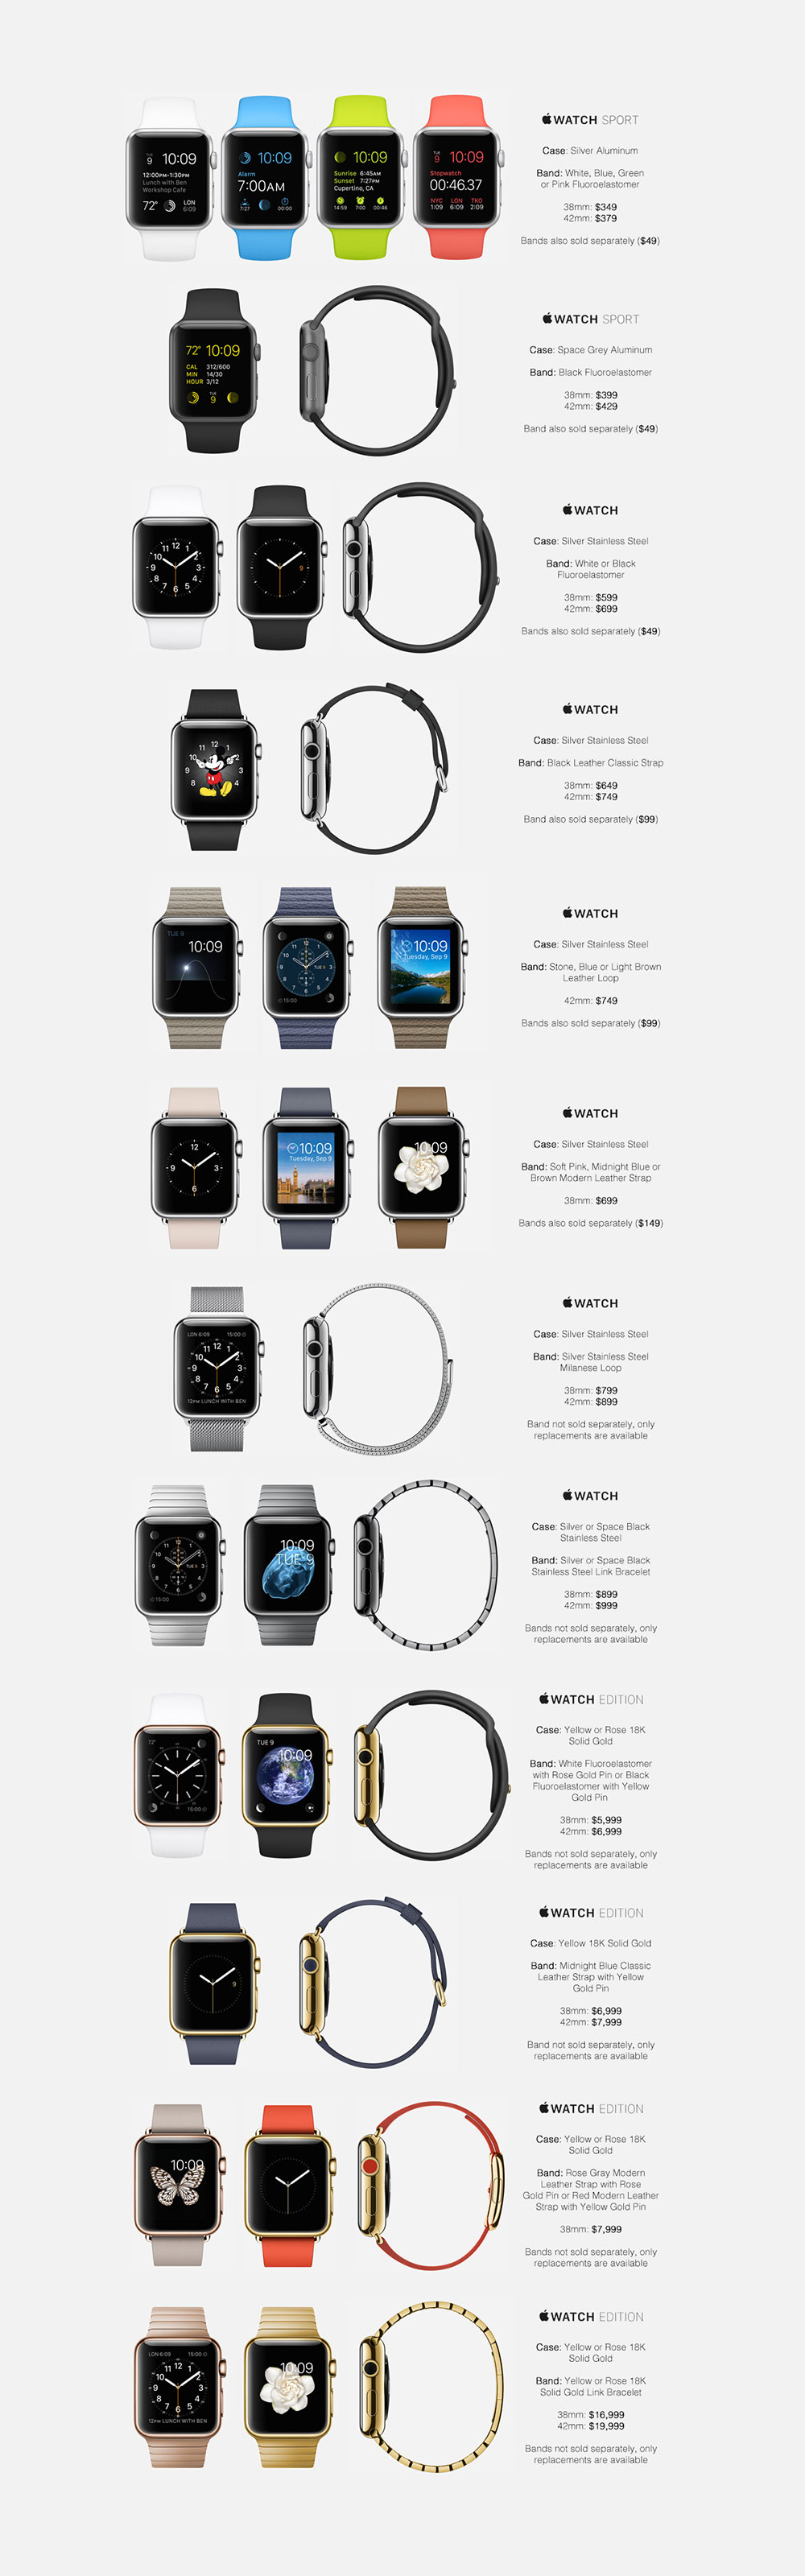 Ceny-Apple-Watch-plotka-01